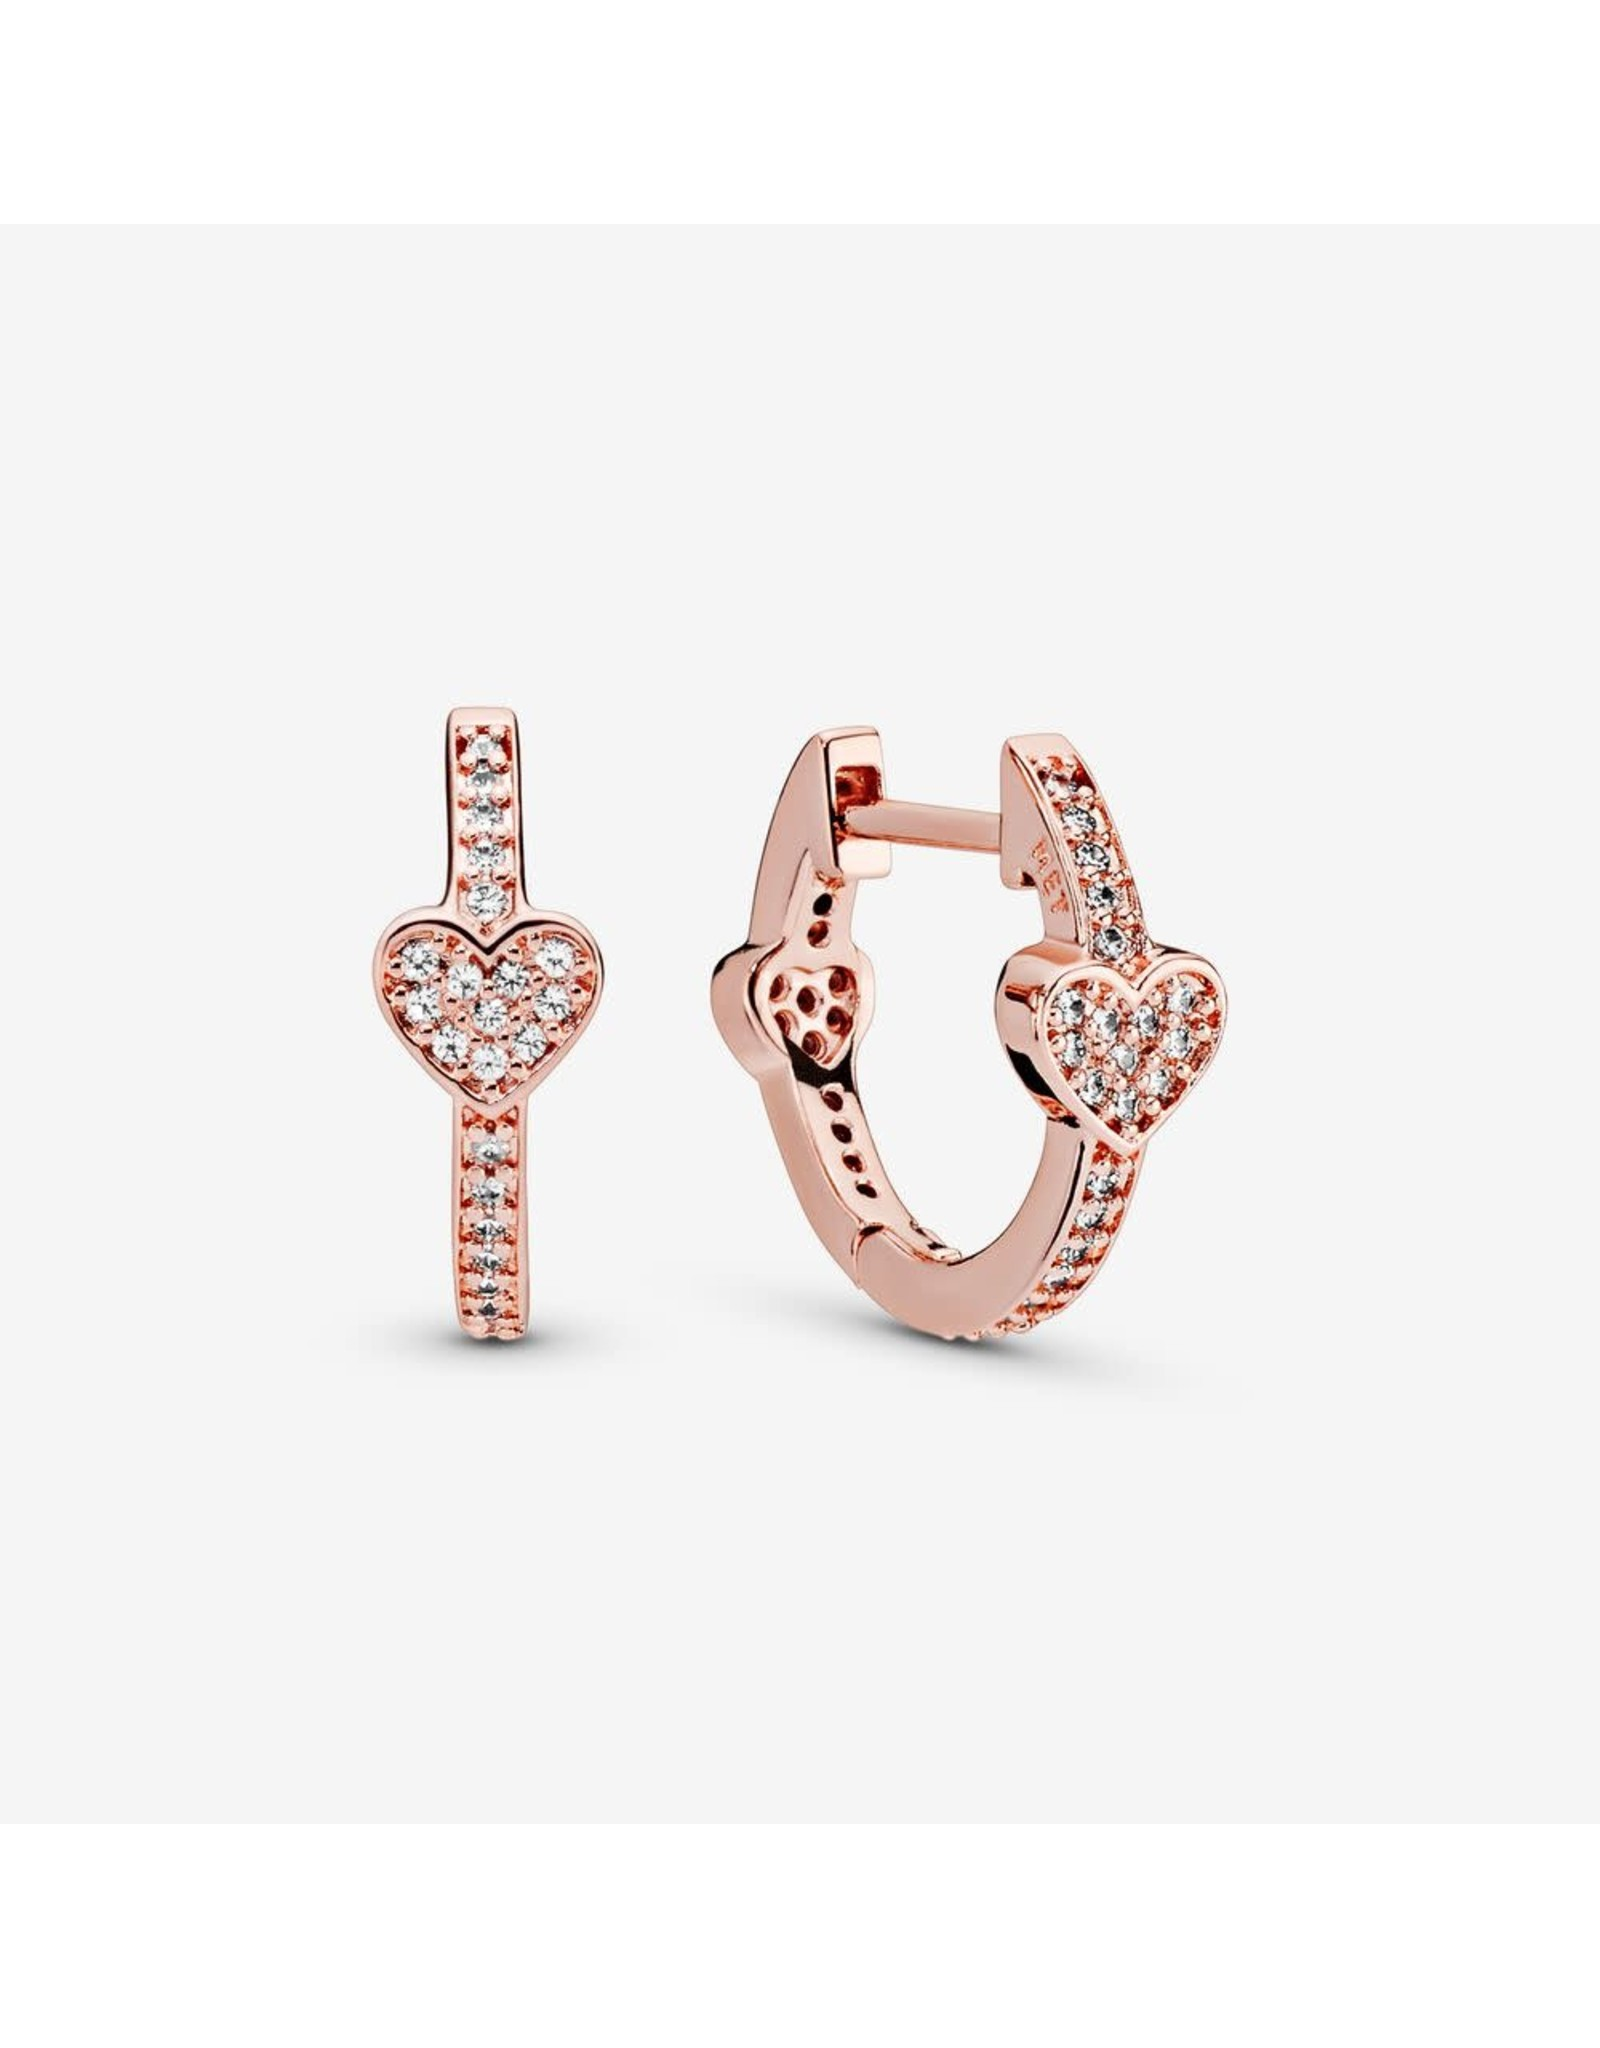 Pandora Pandora Hearts Hoop Earrings In Rose Gold With 76 Micro Bead-Cet Clear CZ